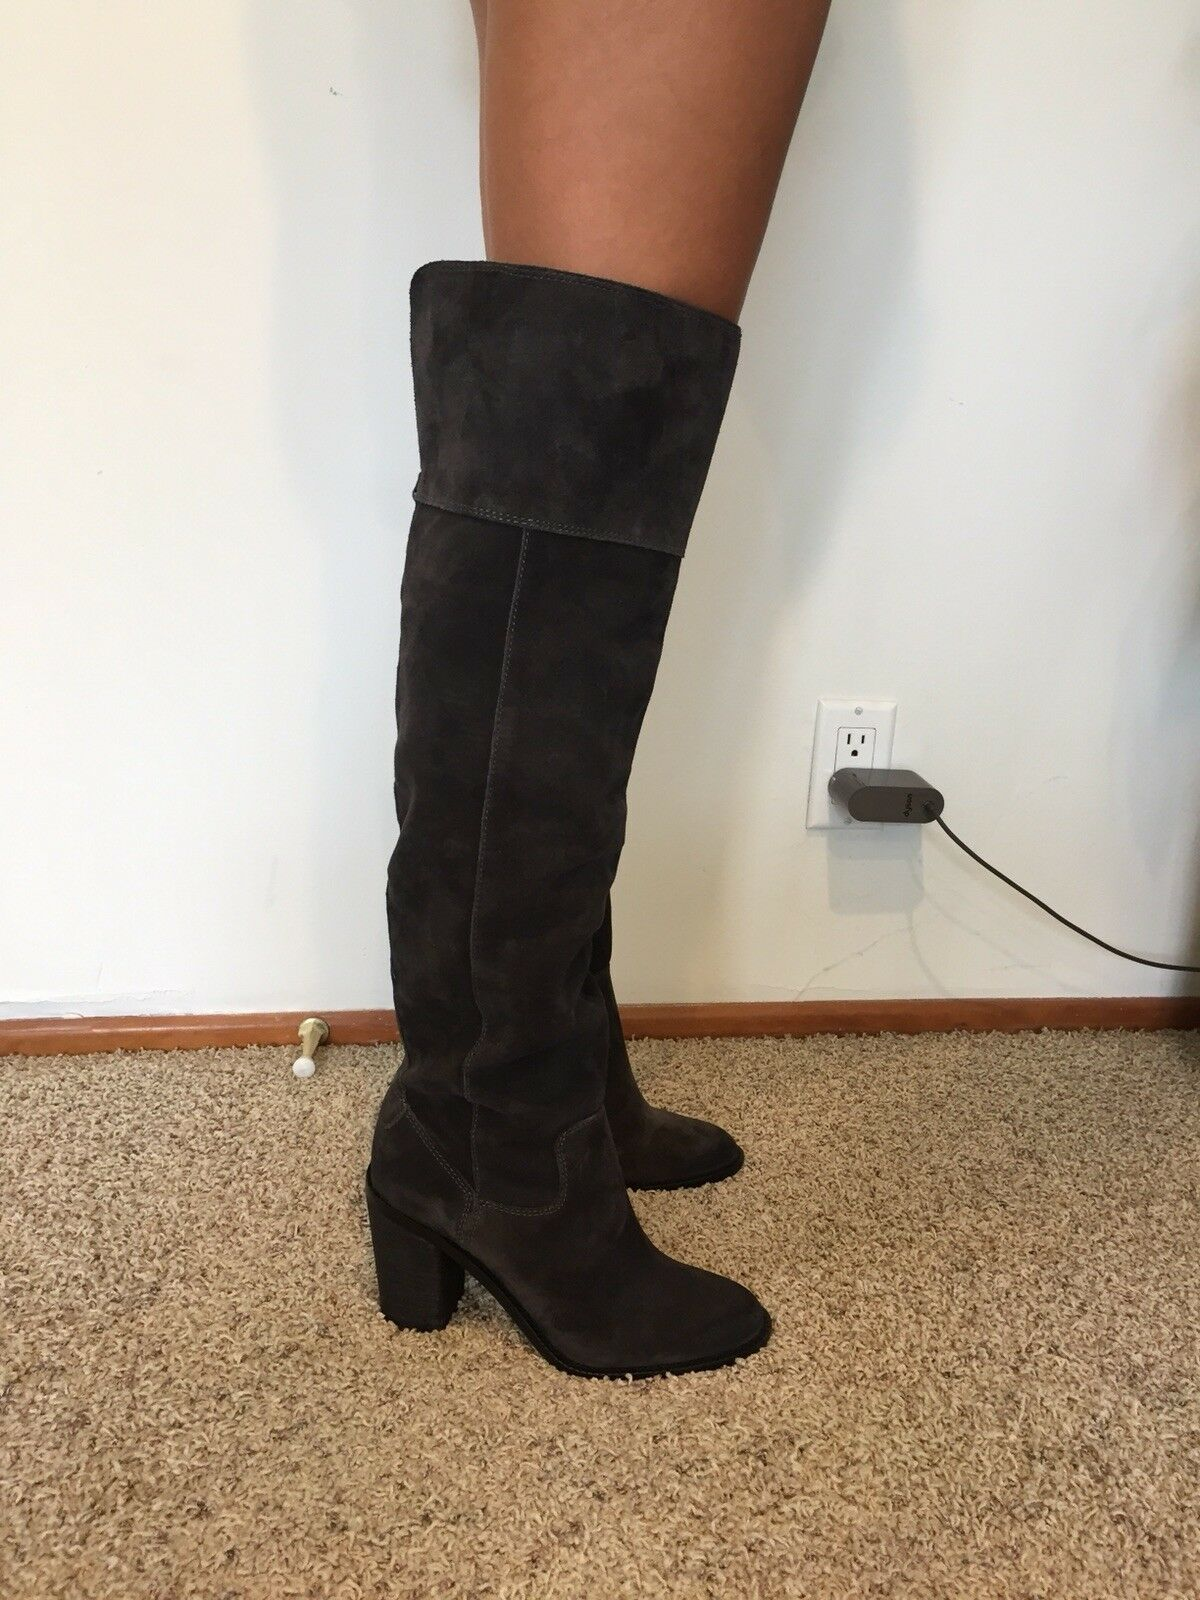 Steve Madden Orlando Boots 8, leather suede